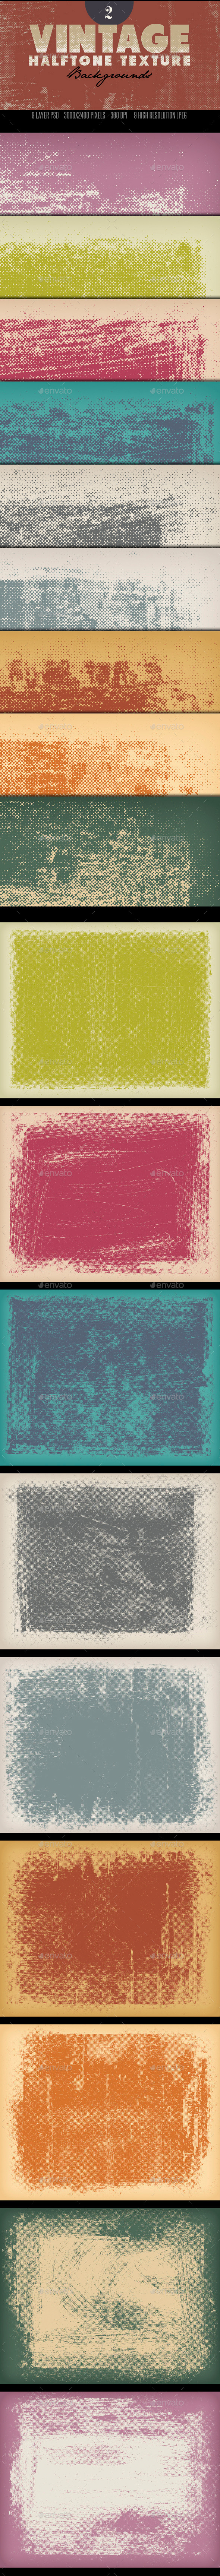 Vintage Halftone Textures Backgrounds 2 - Backgrounds Graphics